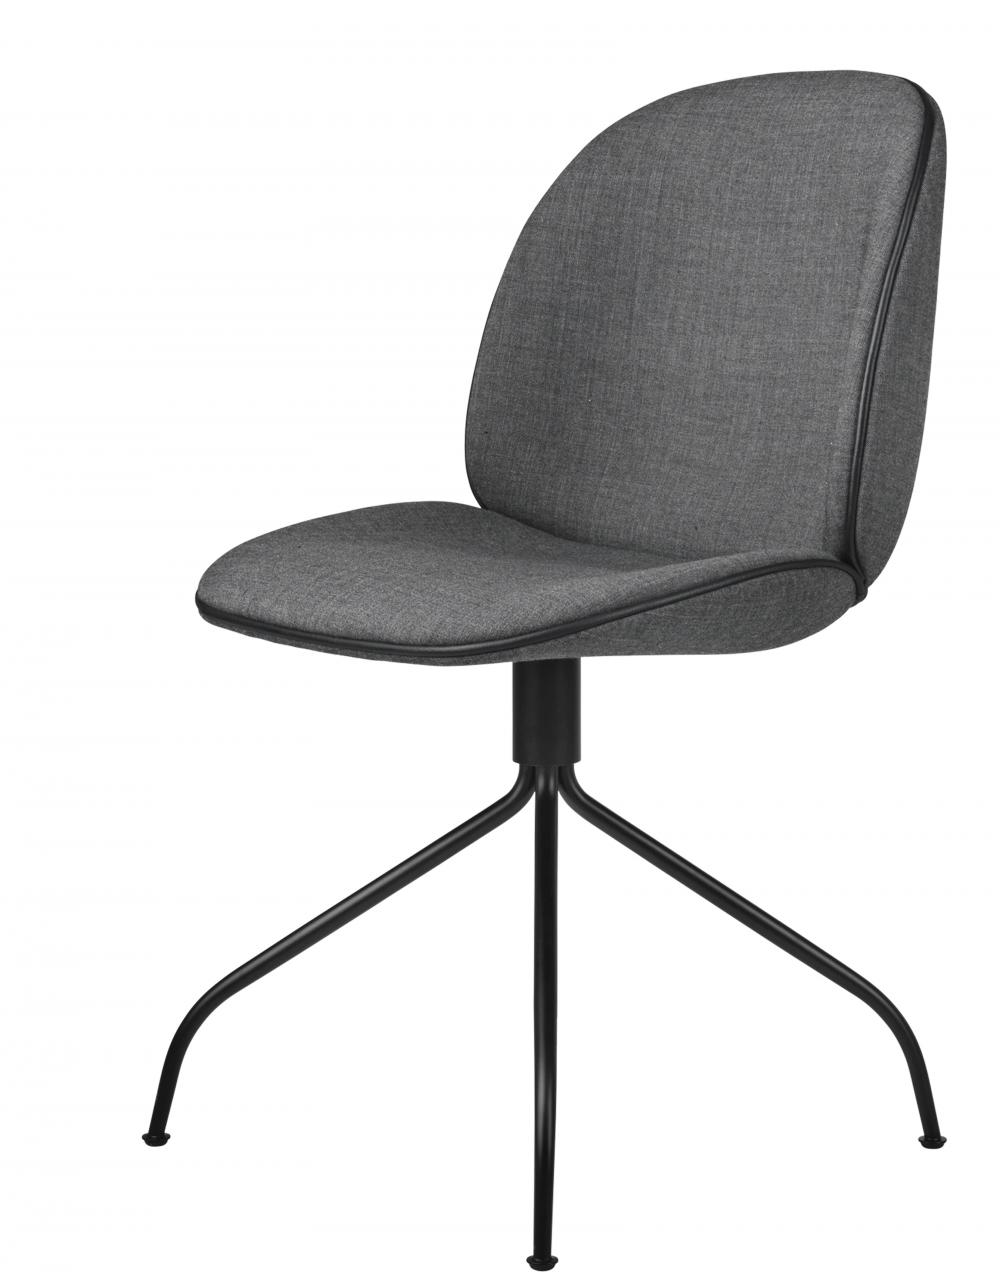 Beetle meeting chair - swivel base - fully upholstered